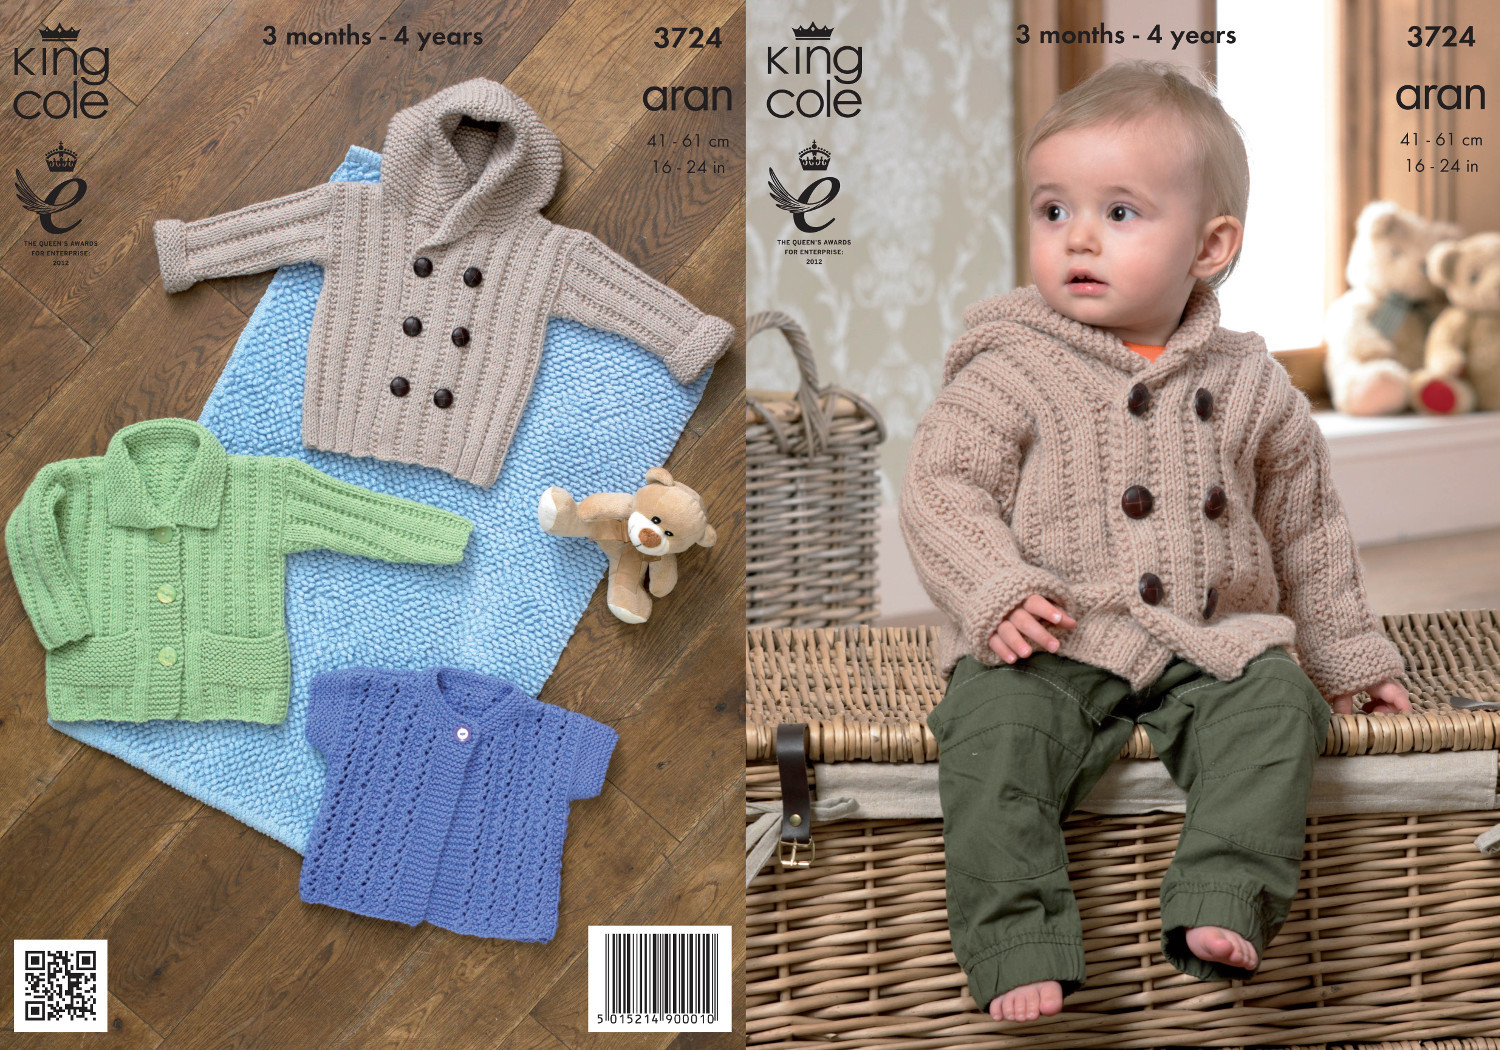 4095aa4e52c0 Baby Aran Knitting Pattern King Cole Kids Coat Jacket Short Sleeve ...